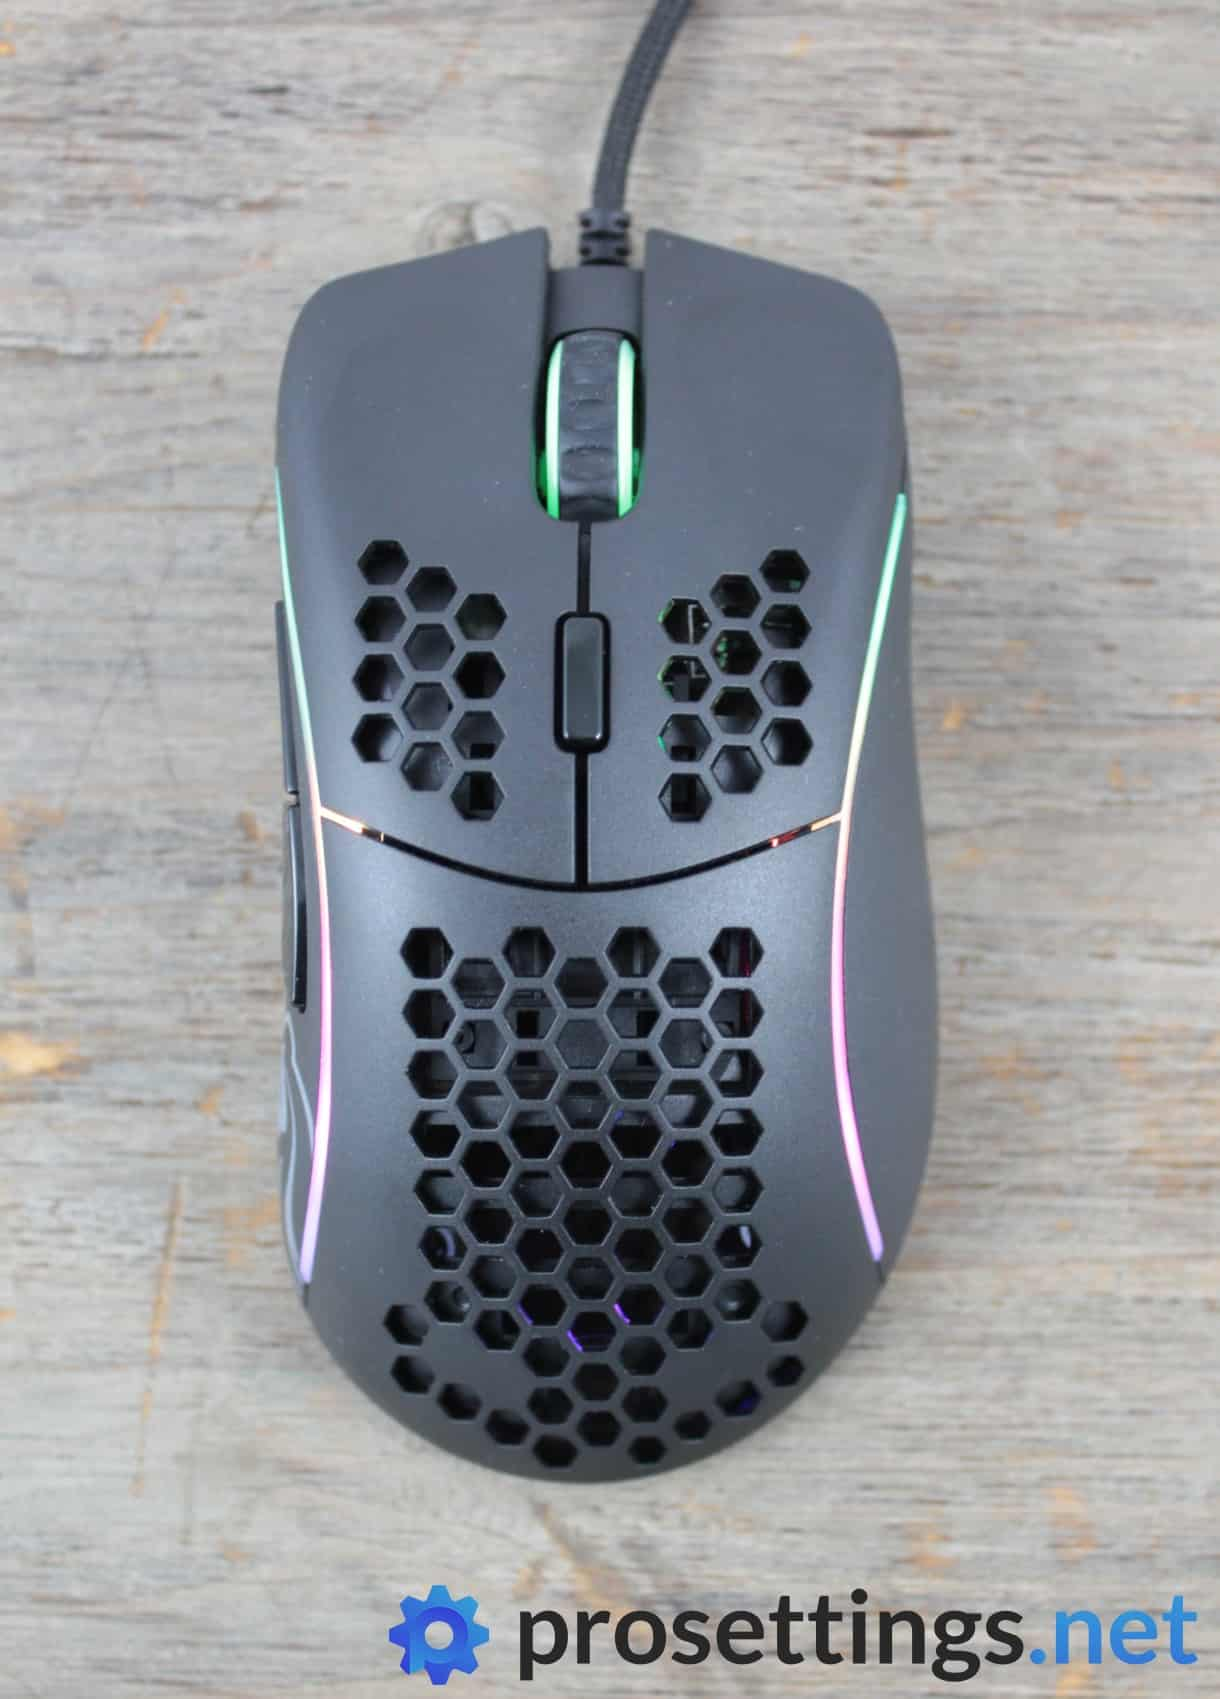 Glorious Model D Mouse Review